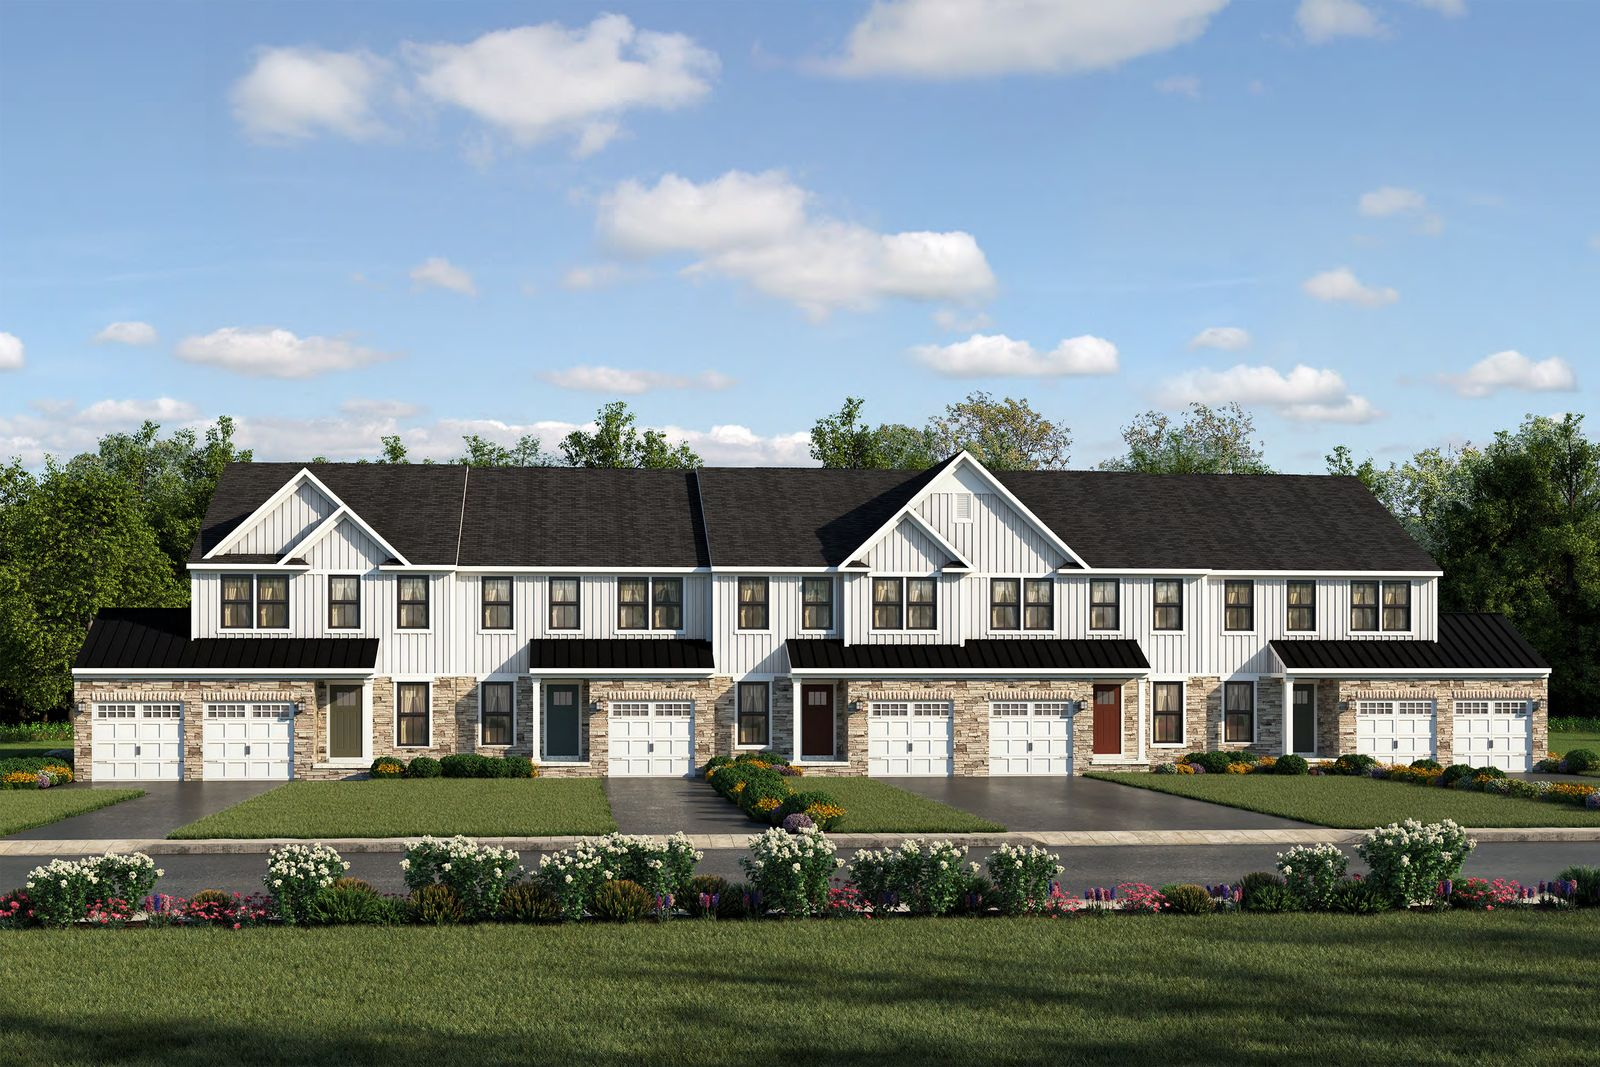 WELCOME TO ASHBOURNE MEADOWS TOWNHOMES